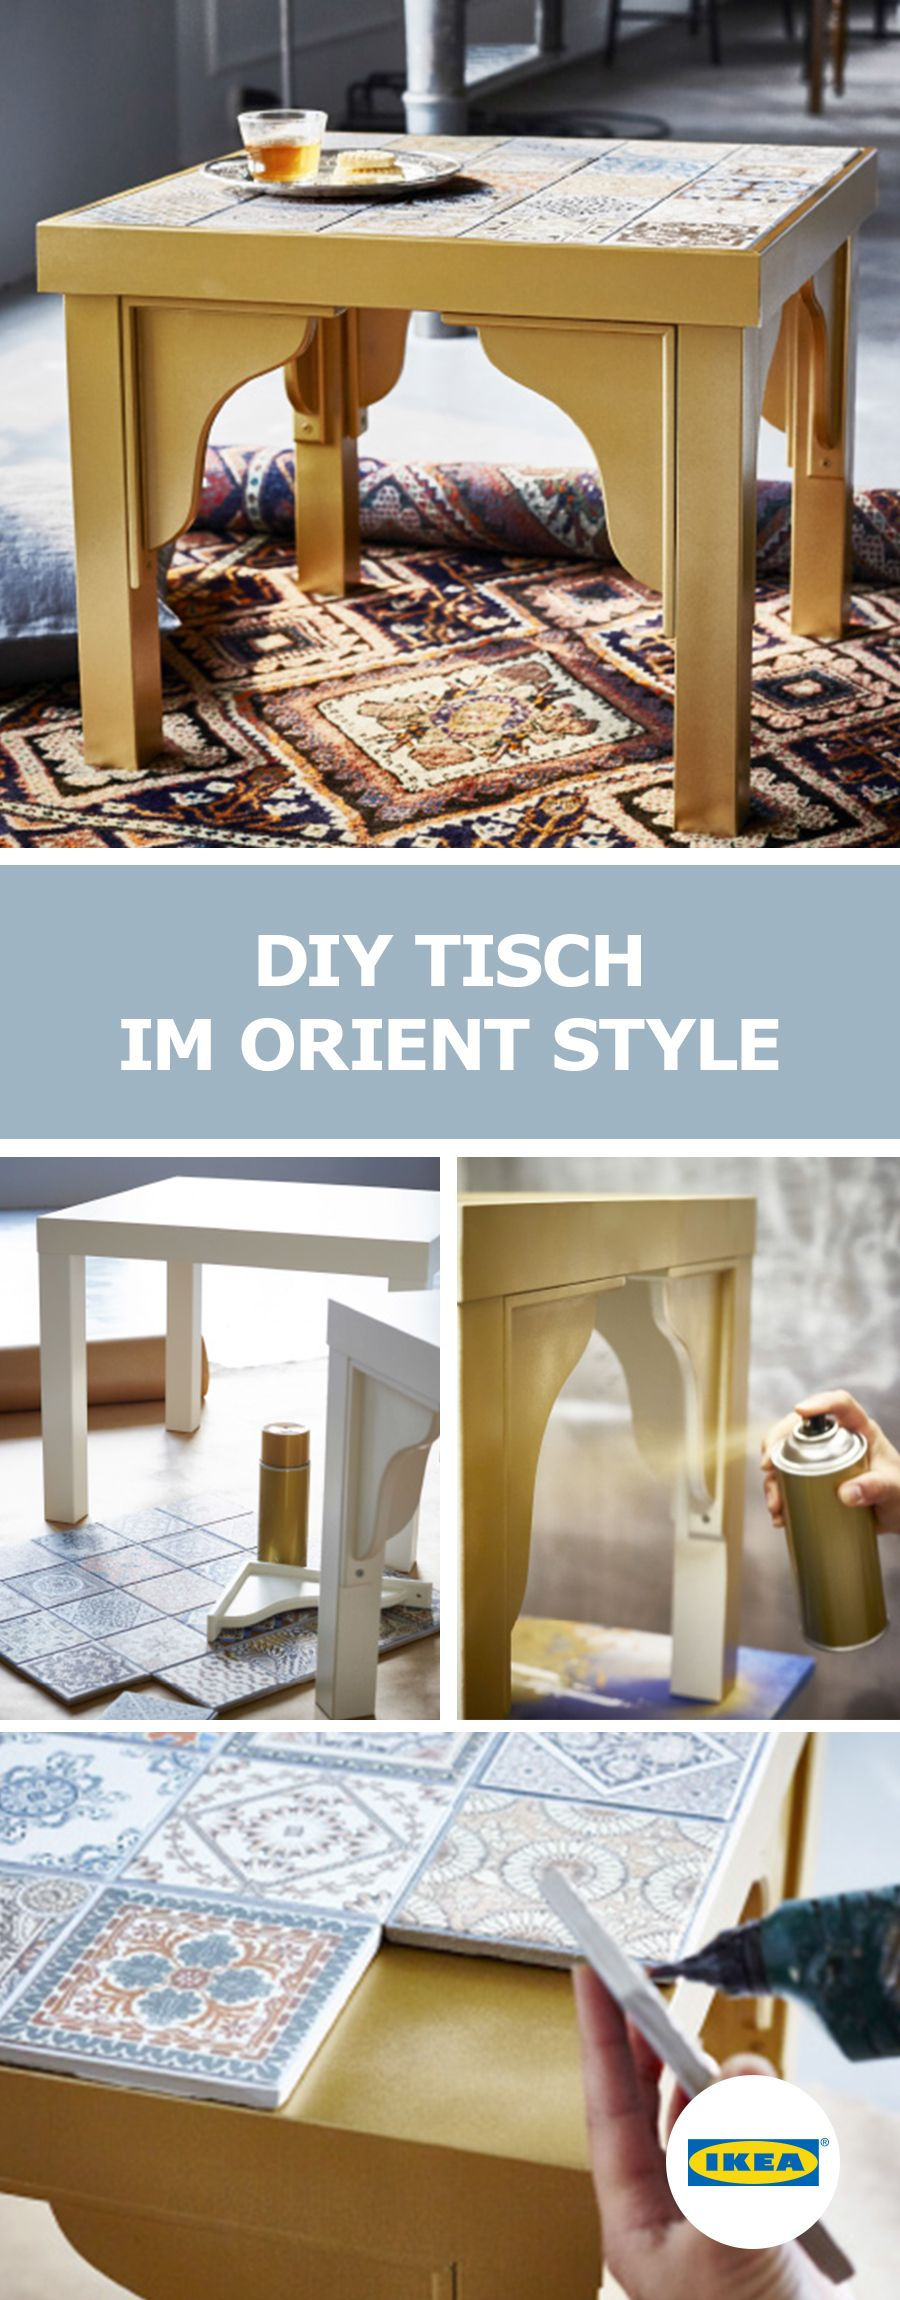 ikea deutschland diy tisch im orientstyle do it yourself pinterest ikea deutschland diy. Black Bedroom Furniture Sets. Home Design Ideas